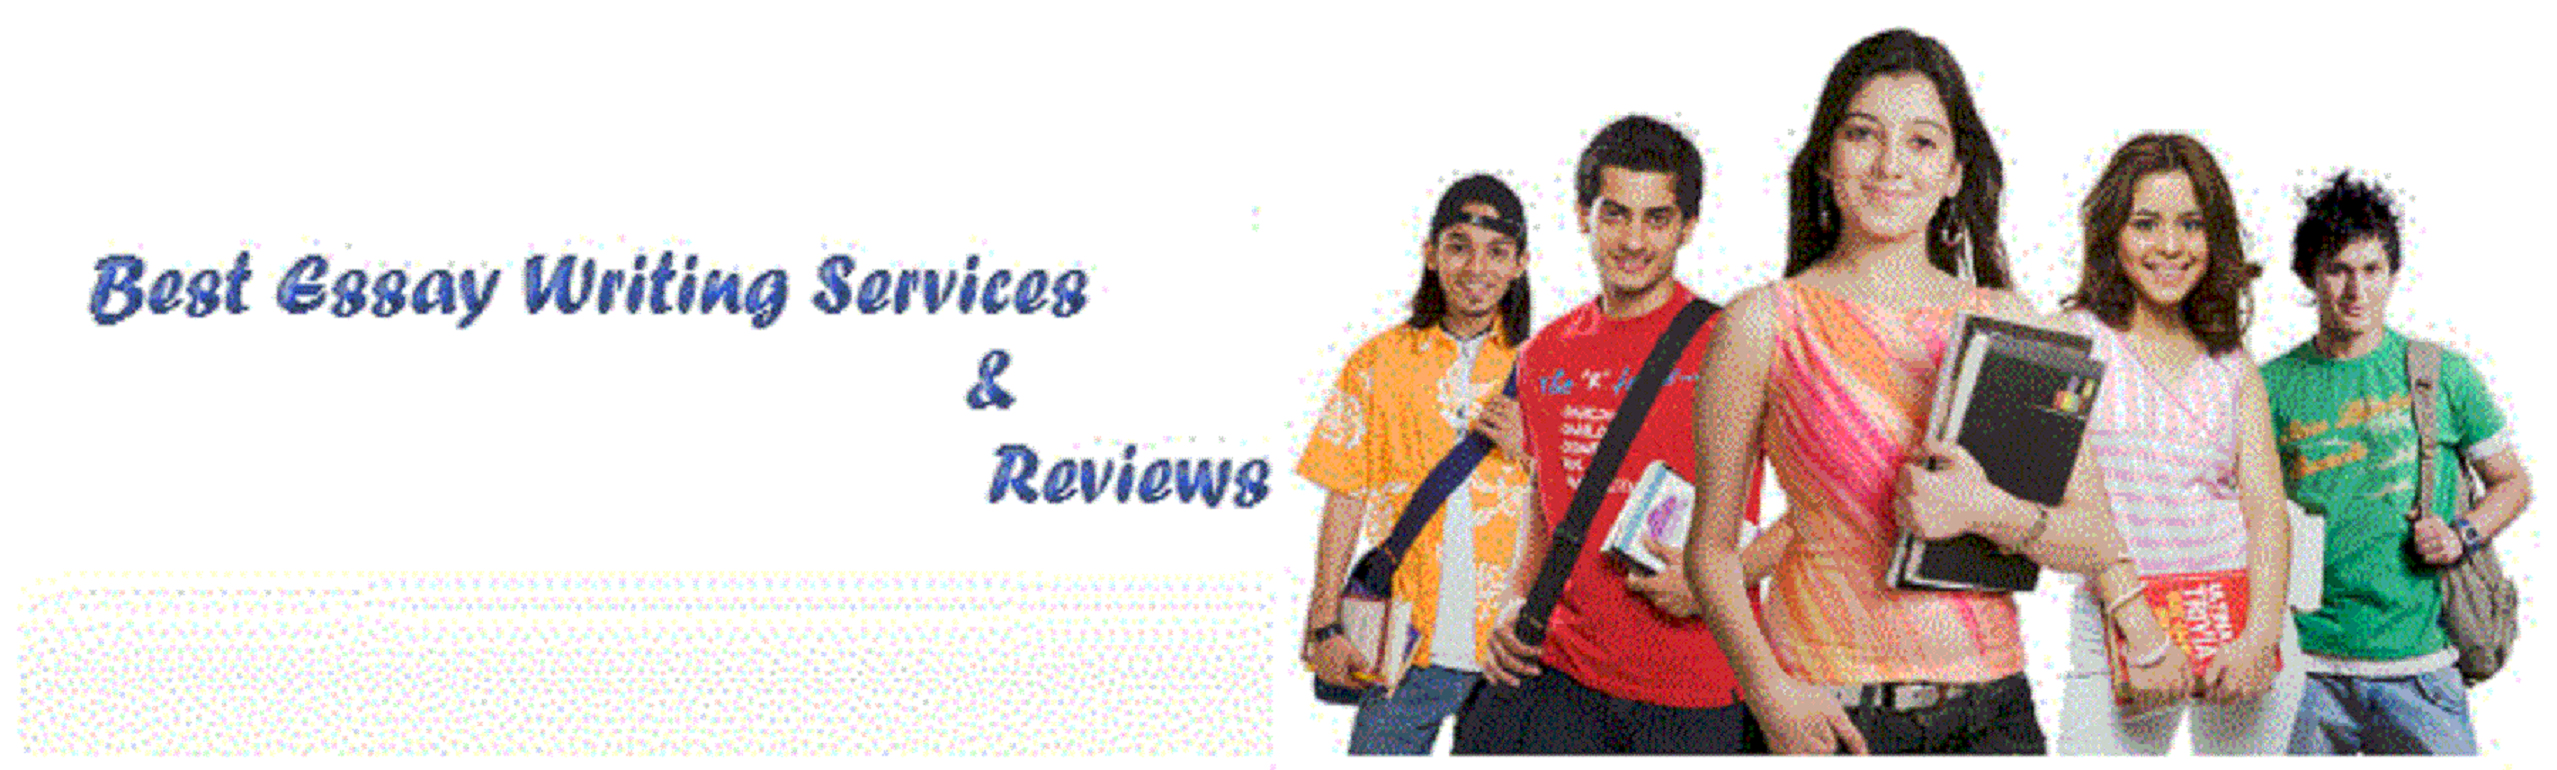 Best essay writing services and reviews reviewwriter